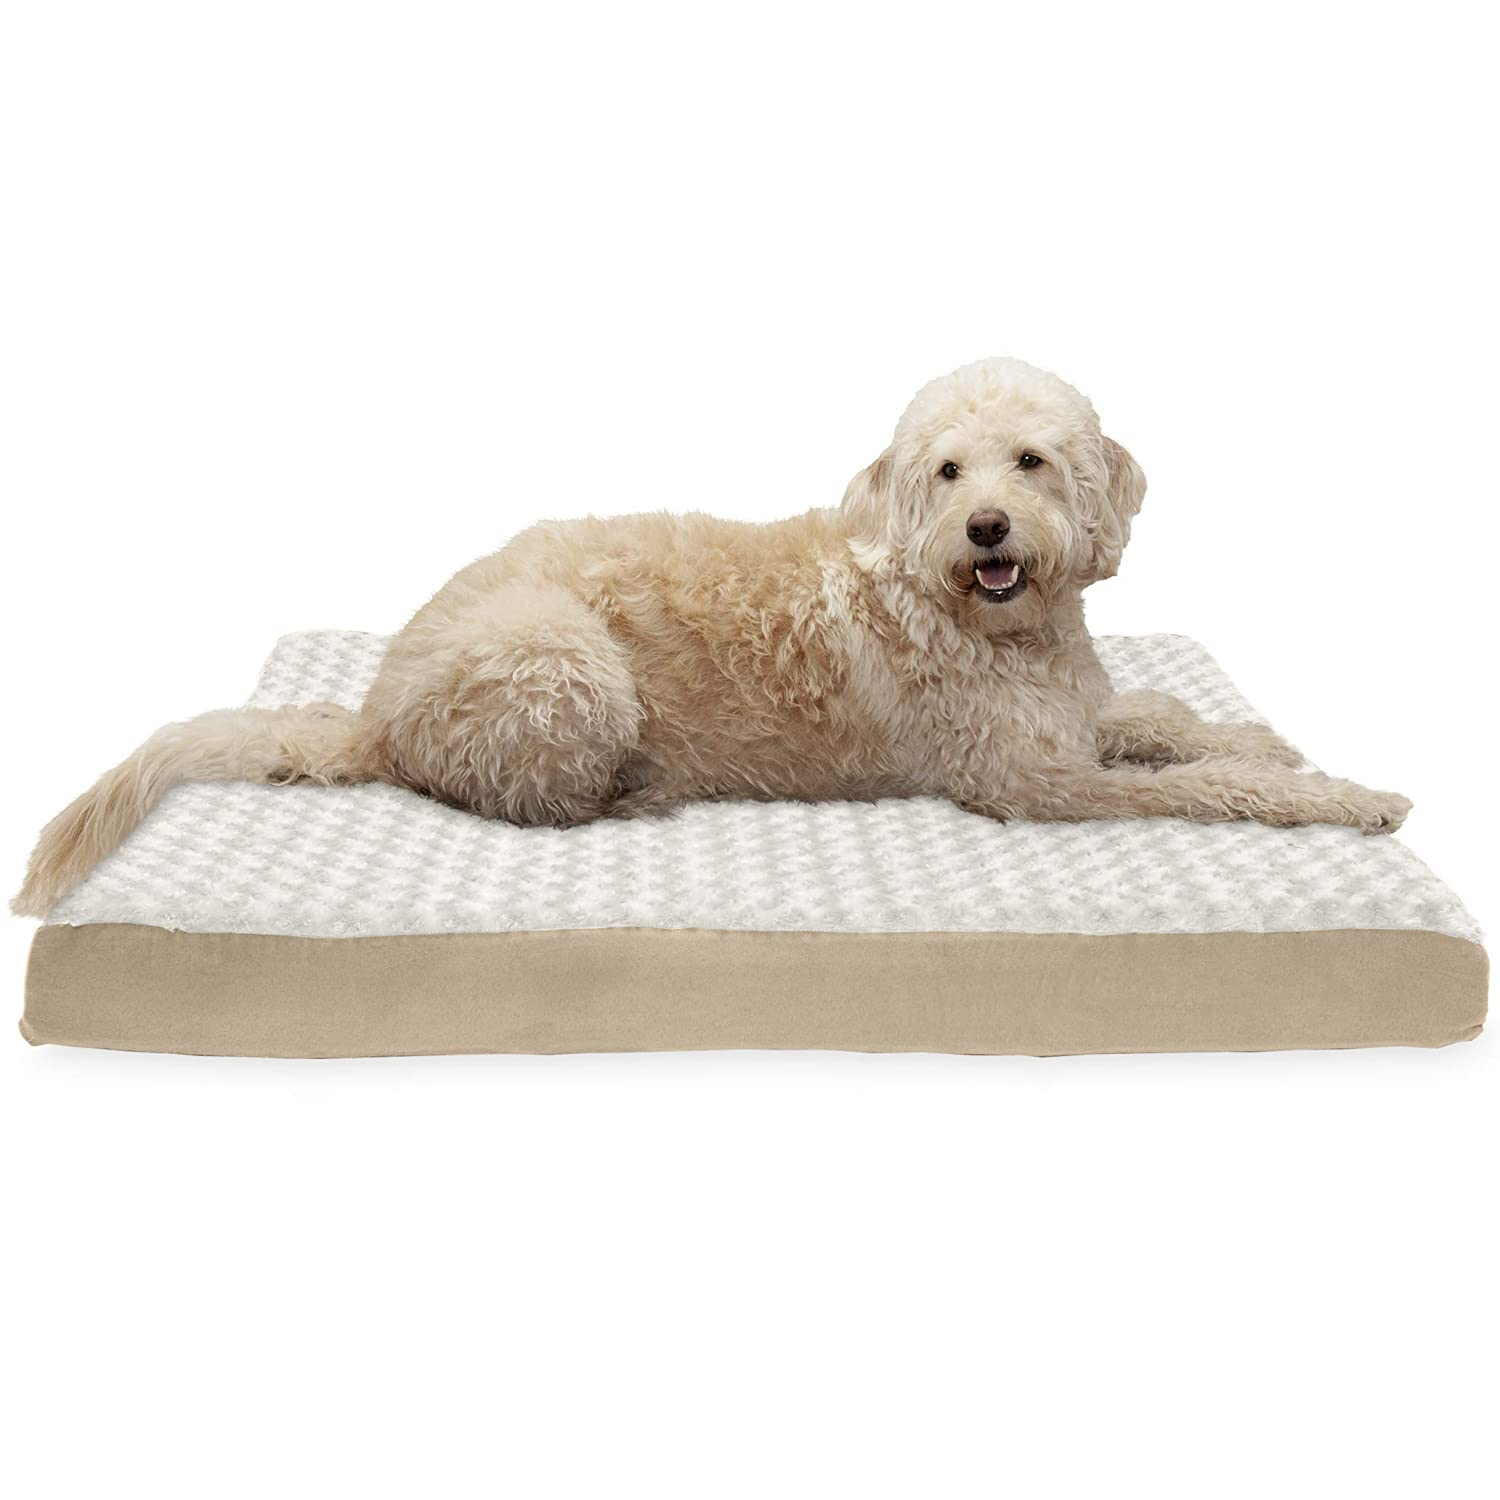 Cream Jumbo Cream Jumbo FurHaven Pet Dog Bed   Deluxe Cooling Gel Memory Foam Orthopedic Ultra Plush Mattress Pet Bed for Dogs & Cats, Cream, Jumbo